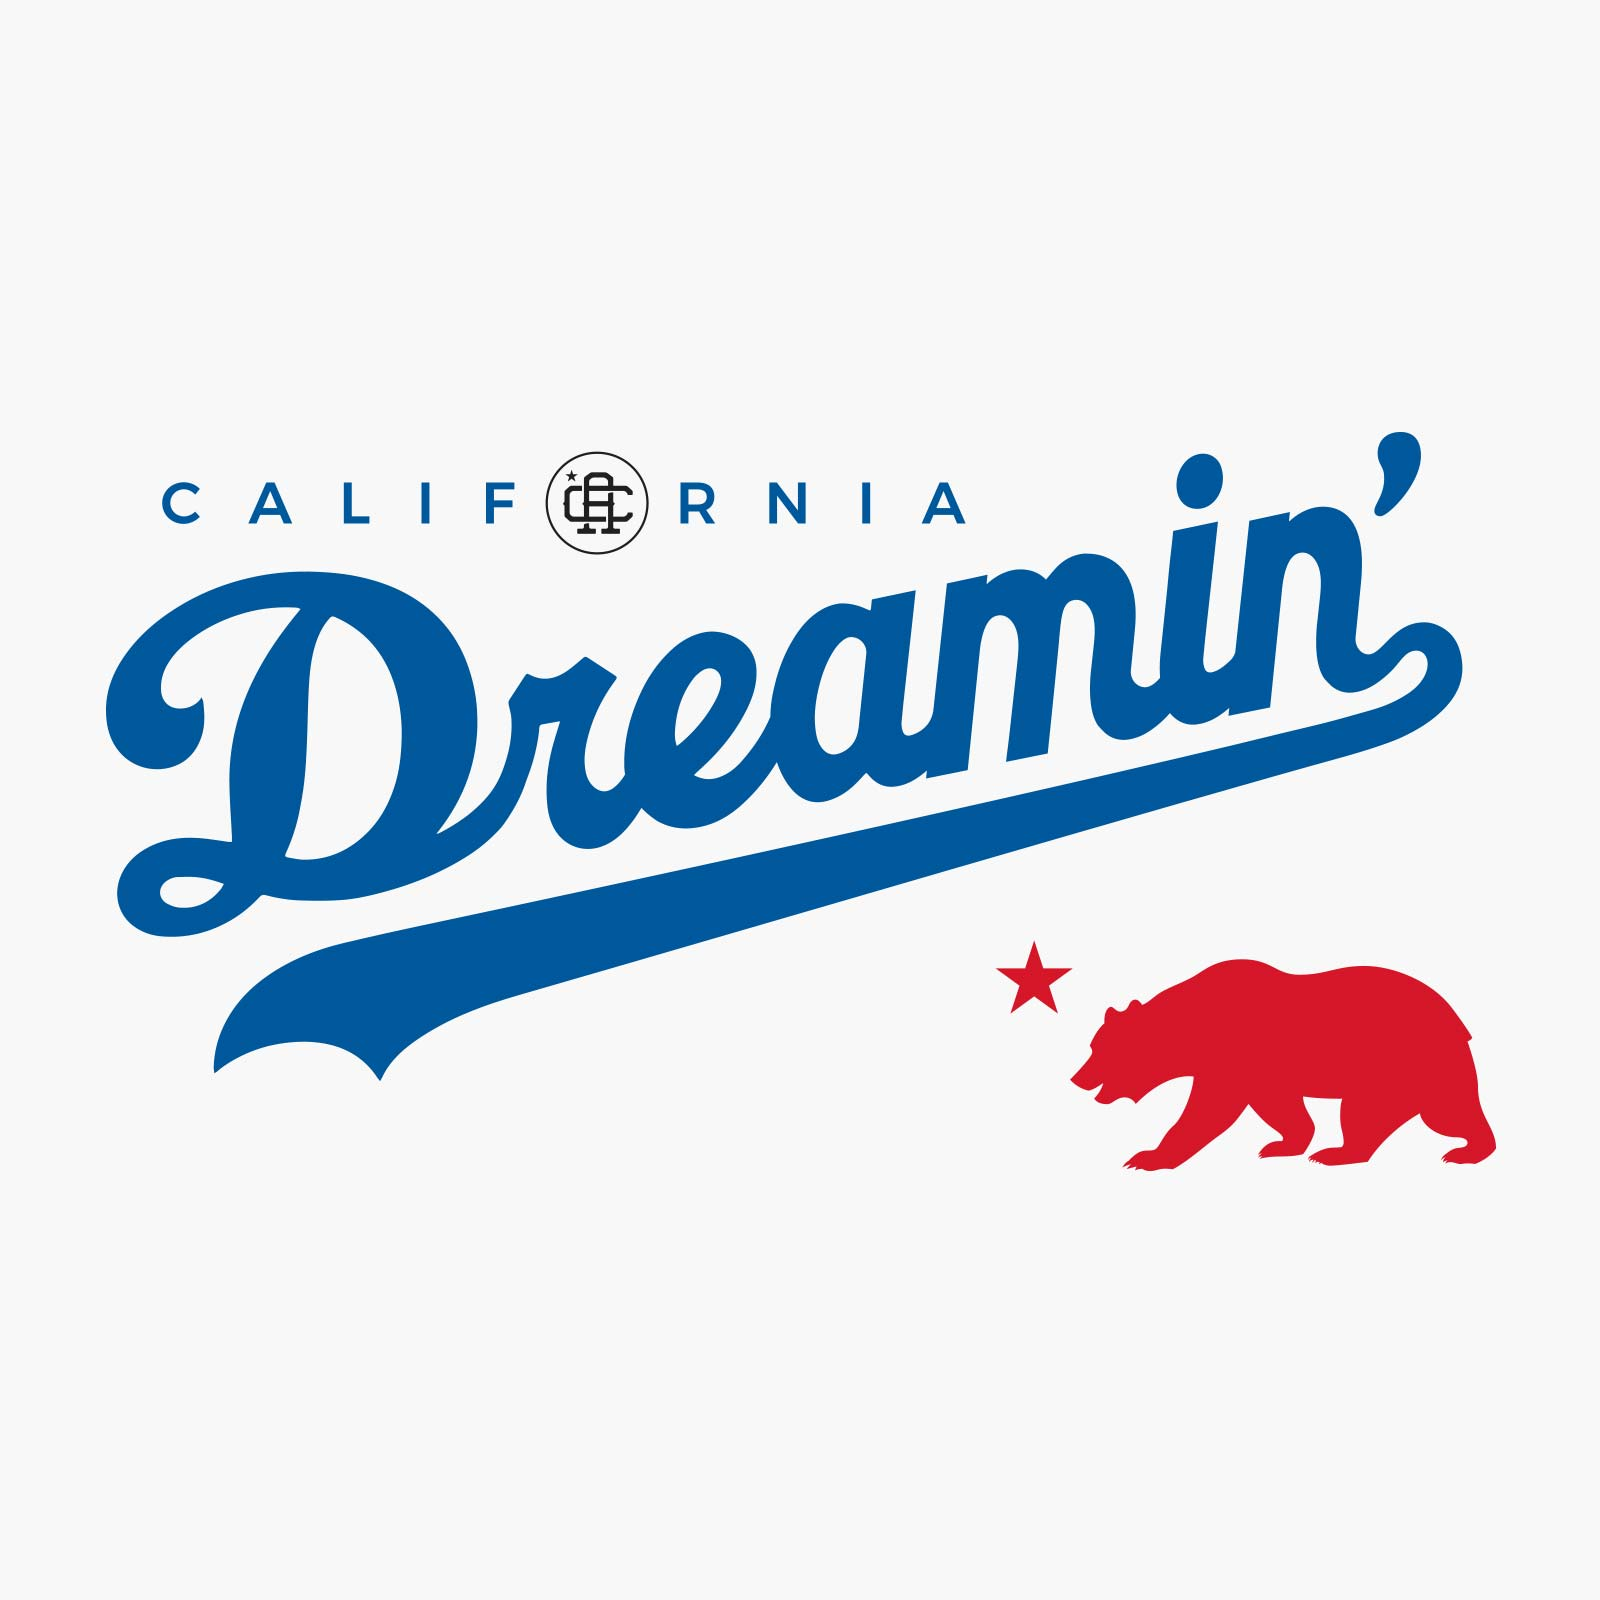 Califas Apparel design 1600 California Dream grizzly bear